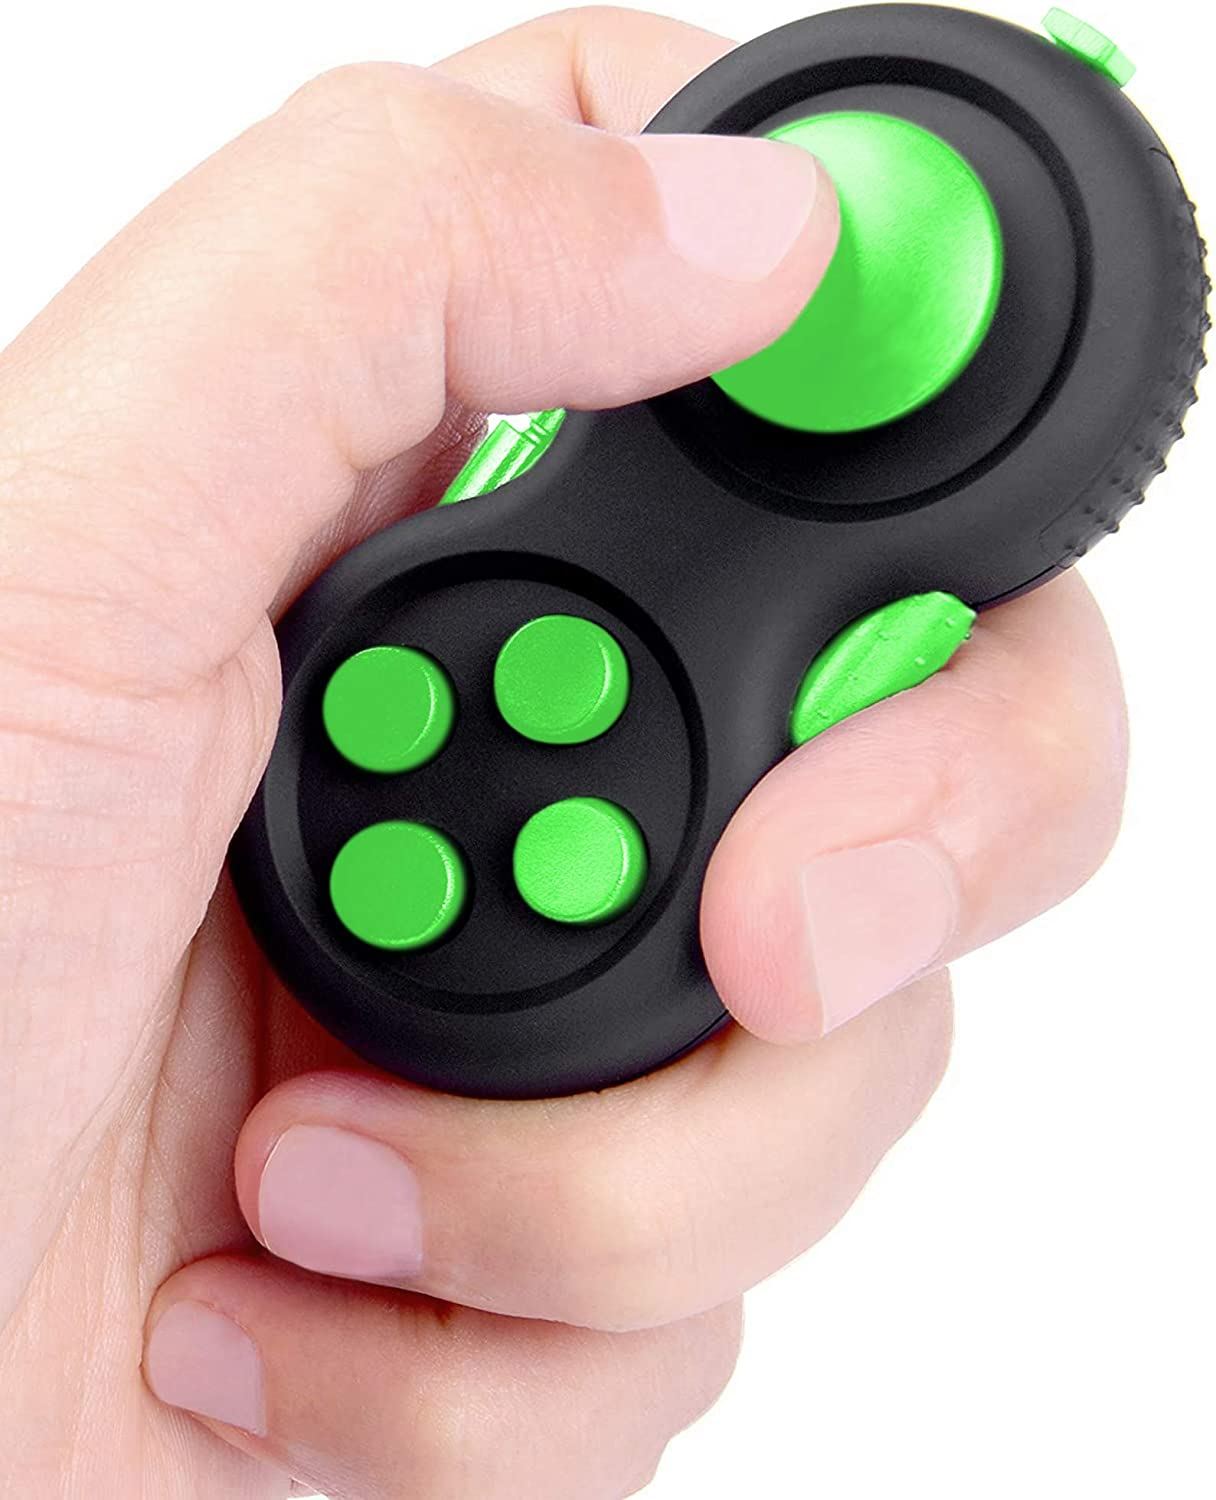 Multicolor Children and Adults Fidget Toy DUDDY-PRO Fidget Pad Anxiety and Stress Relief Perfect for Skin Picking